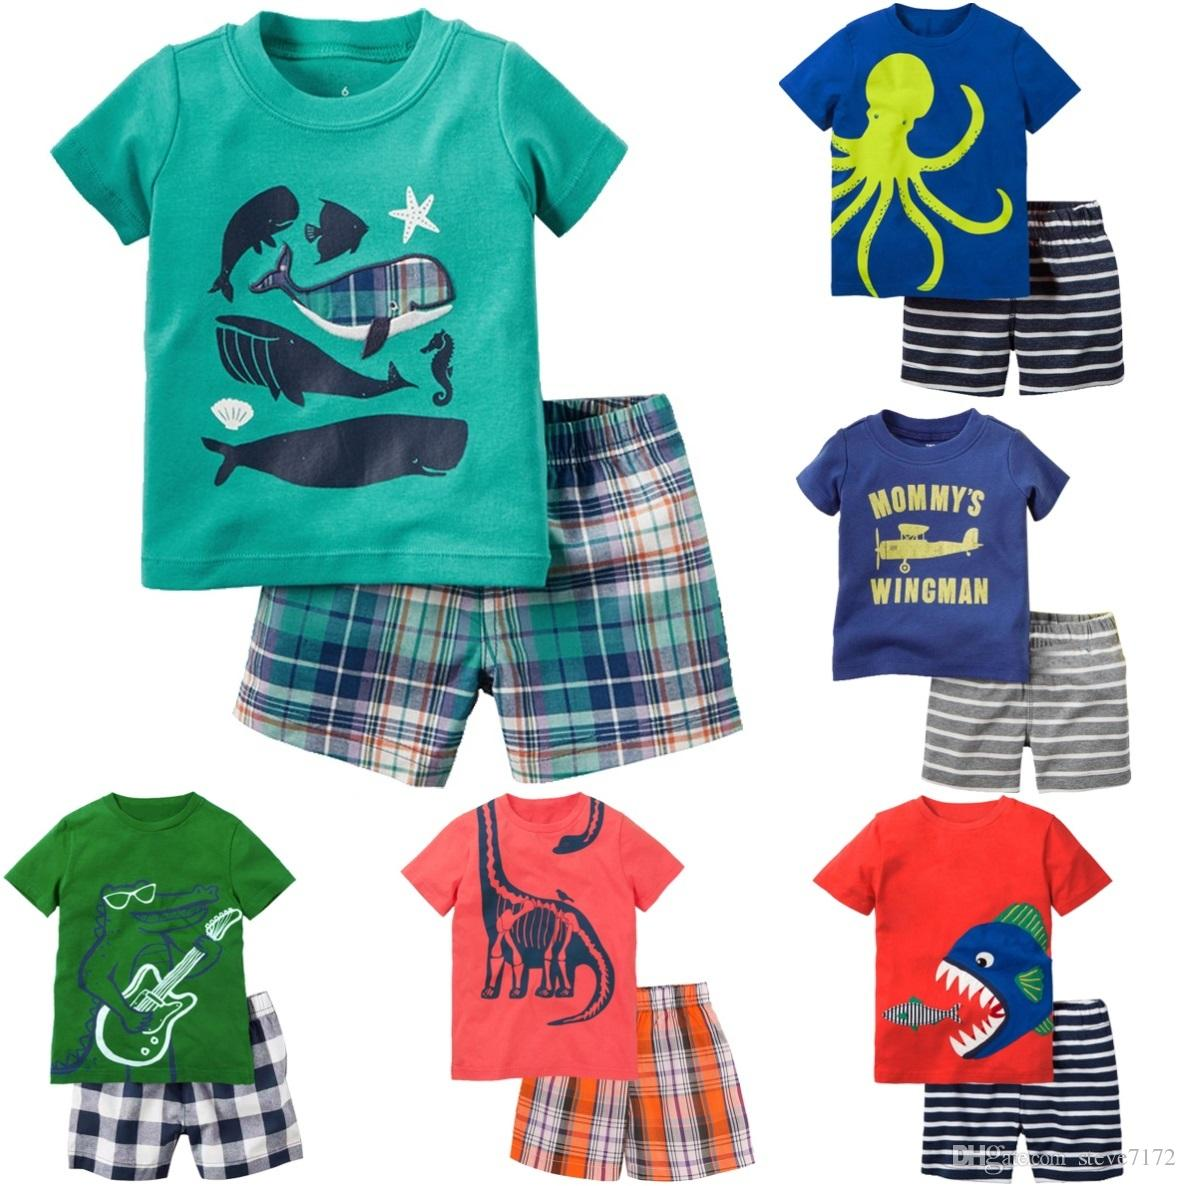 620e81c8b56 2019 Shark Fish Baby Boy Clothes Set Toddler Tee Shirts Pant Clothing Suit  Children Outfit Cotton Kids Short Pants Tops 1 5Y Tracksuits From  Steve7172